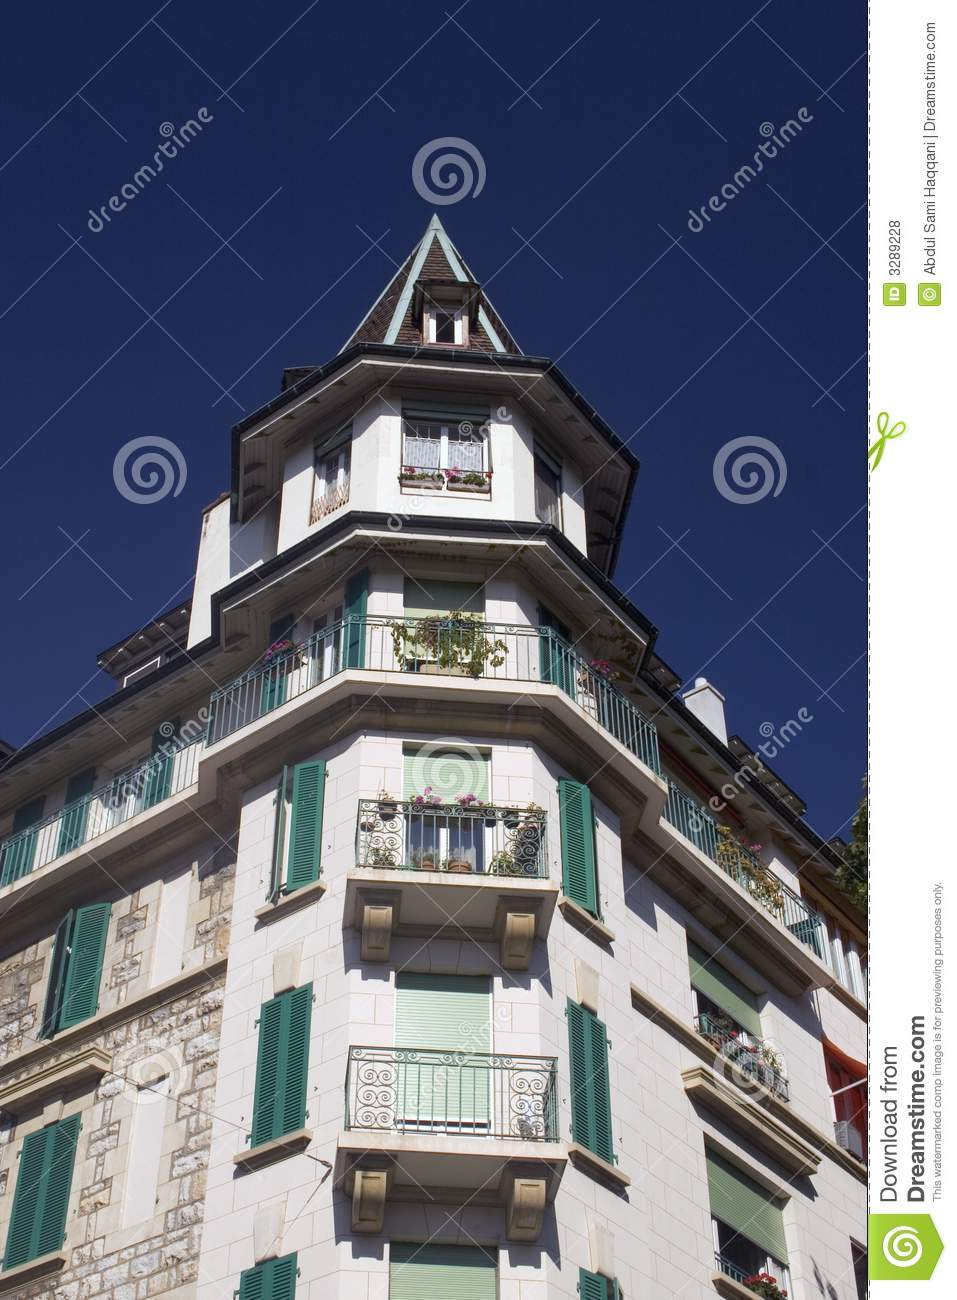 Nice building royalty free stock photos image 3289228 for Nice building images